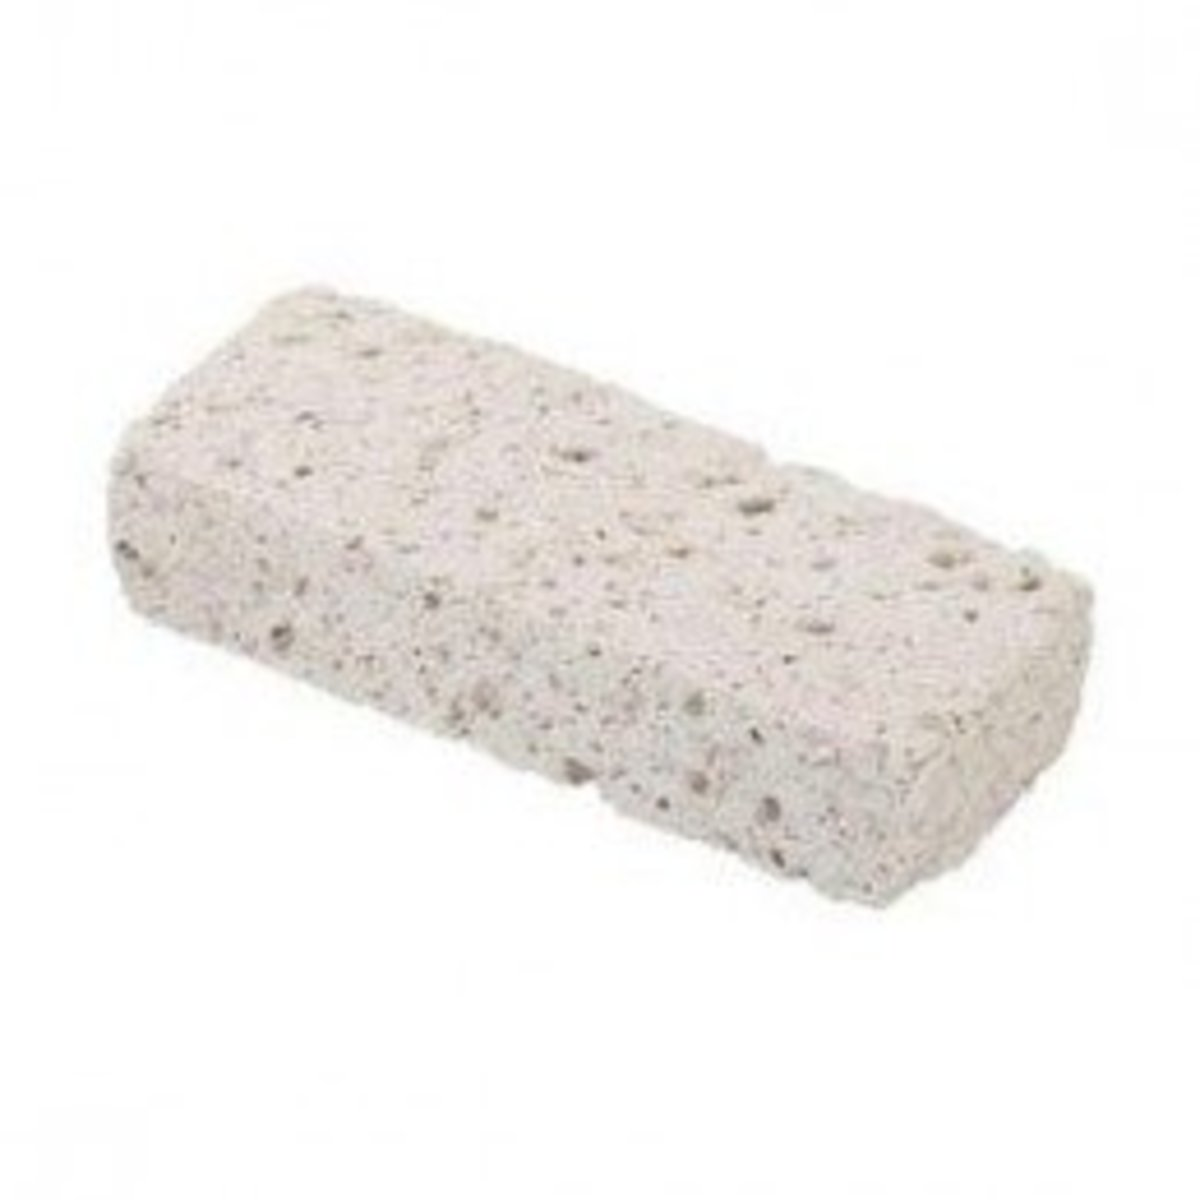 Best Pumice Stone for Soft Feet and Skin